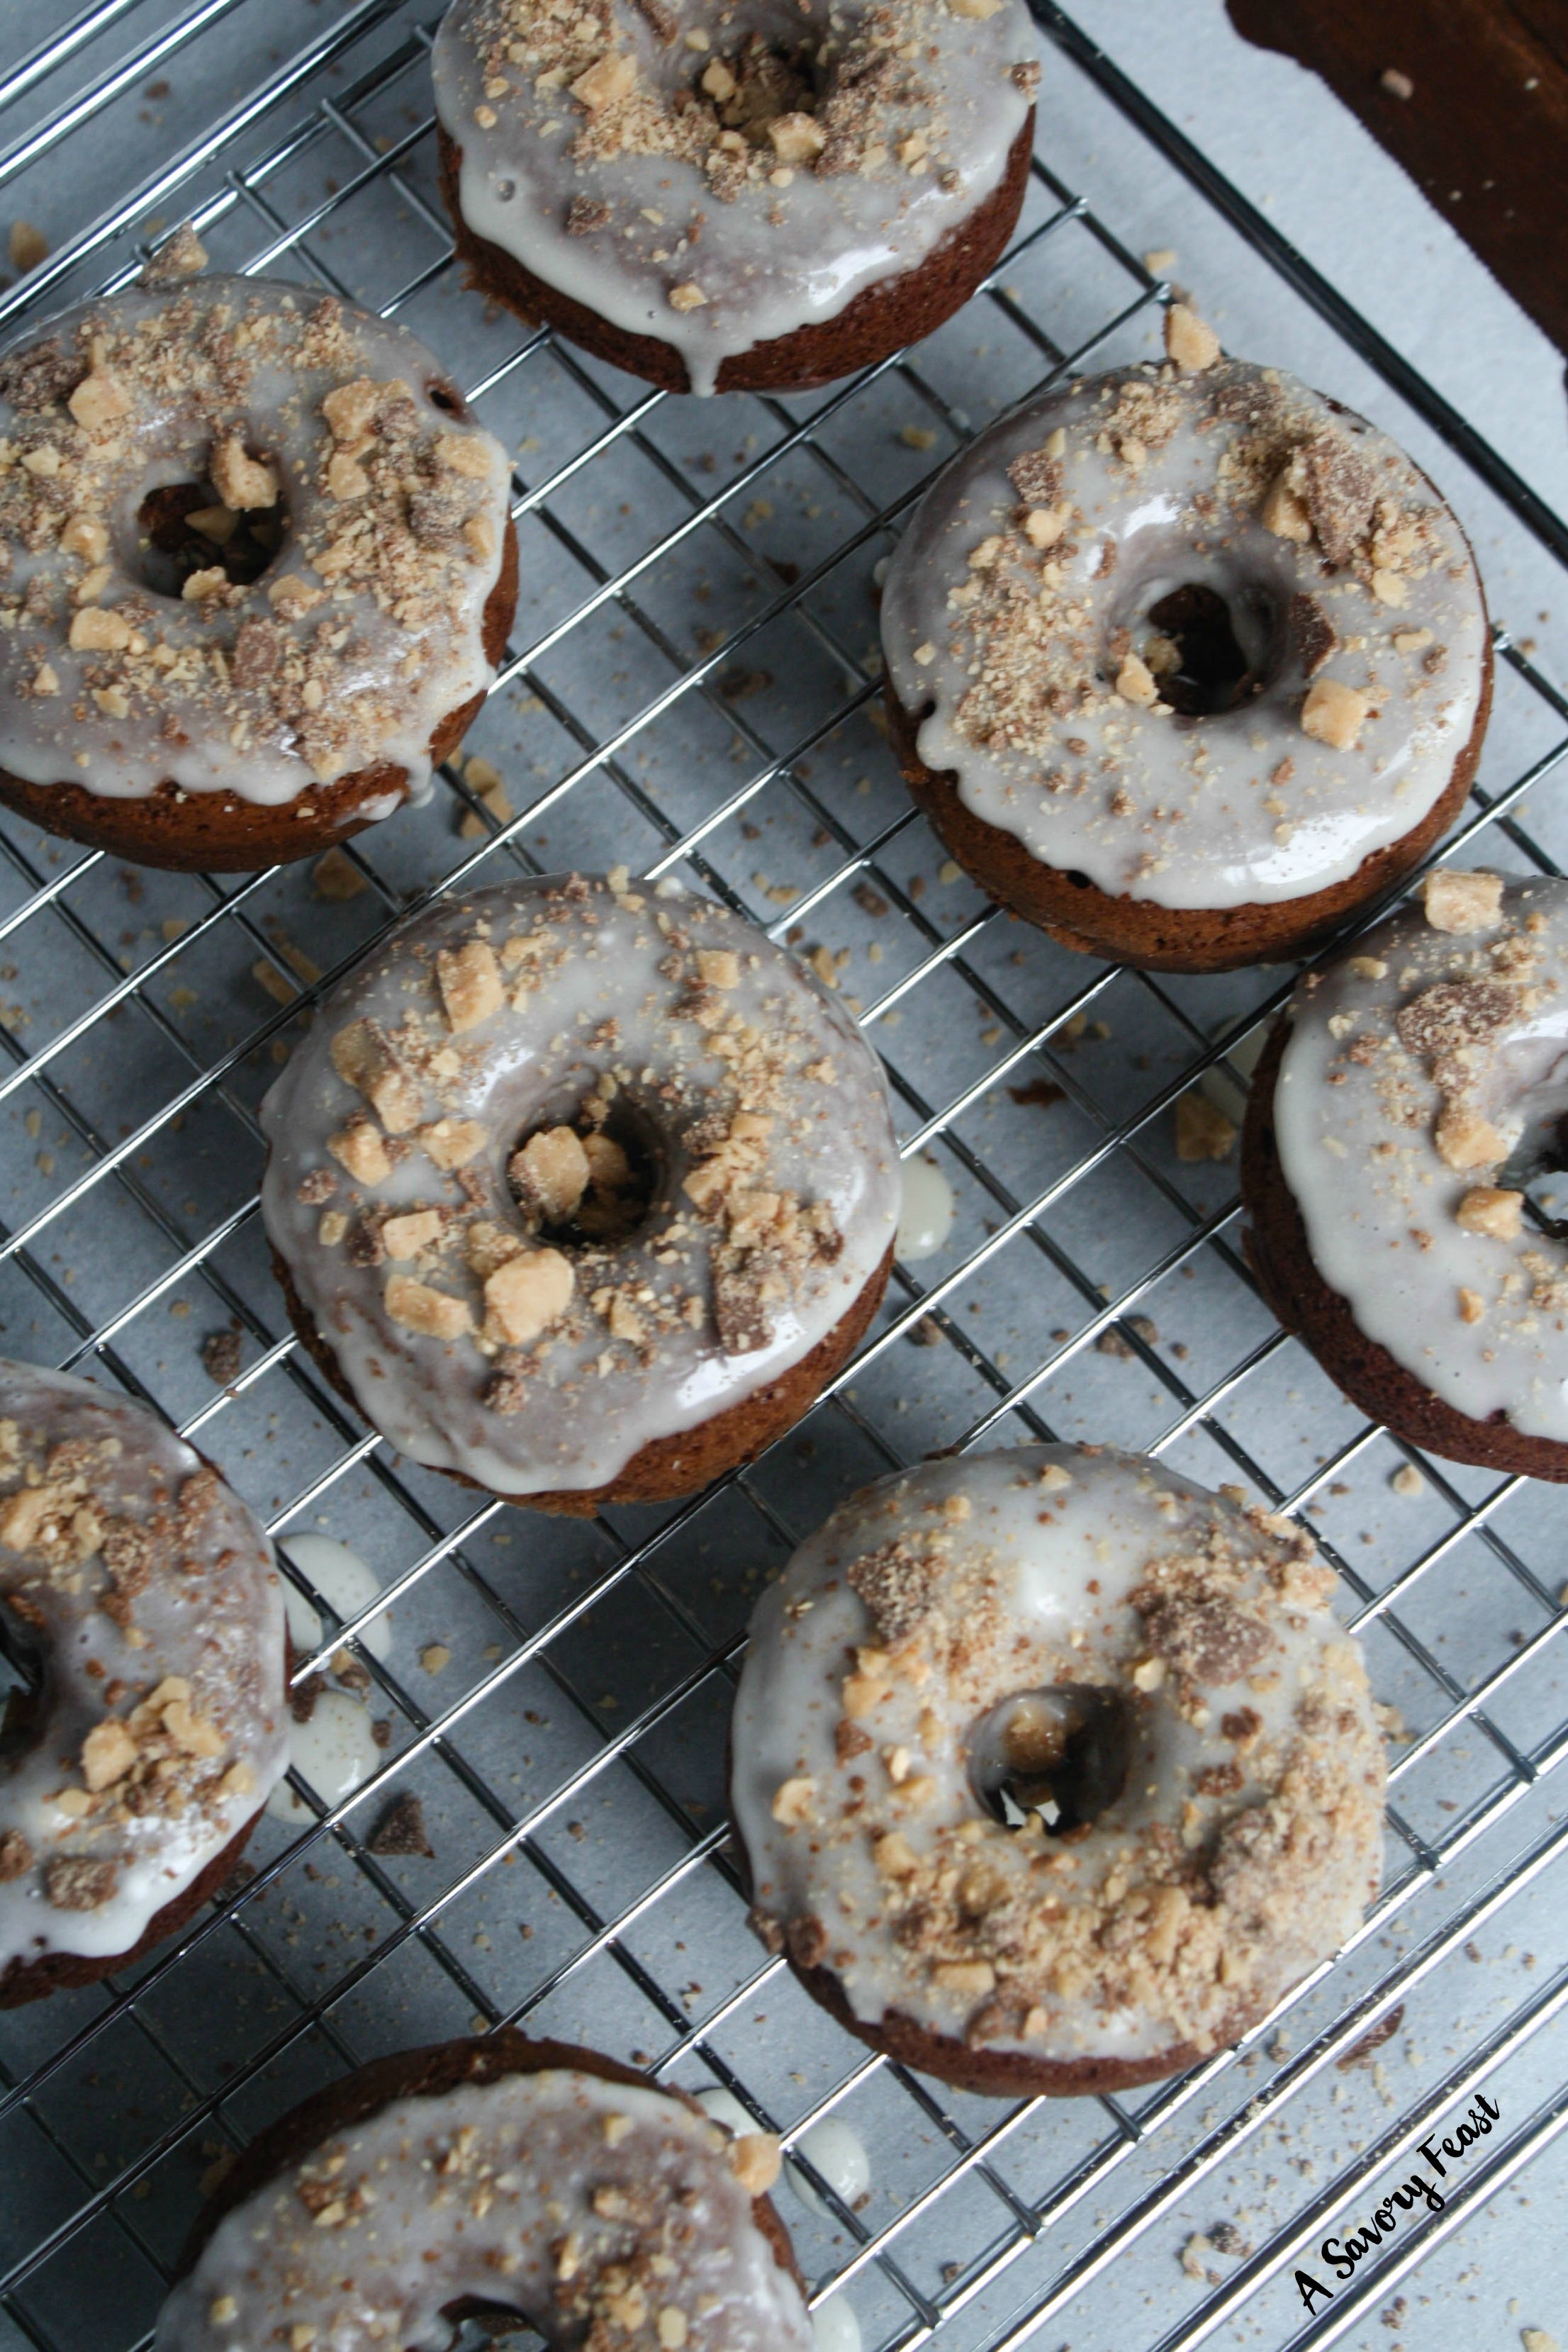 Because we all need more than one form of coffee for breakfast... These Toffee Chocolate Baked Donuts are a delicious coffee-infused chocolate treat! A simple chocolate coffee baked donut dipped in a sugar-y glaze and topped with toffee bits.